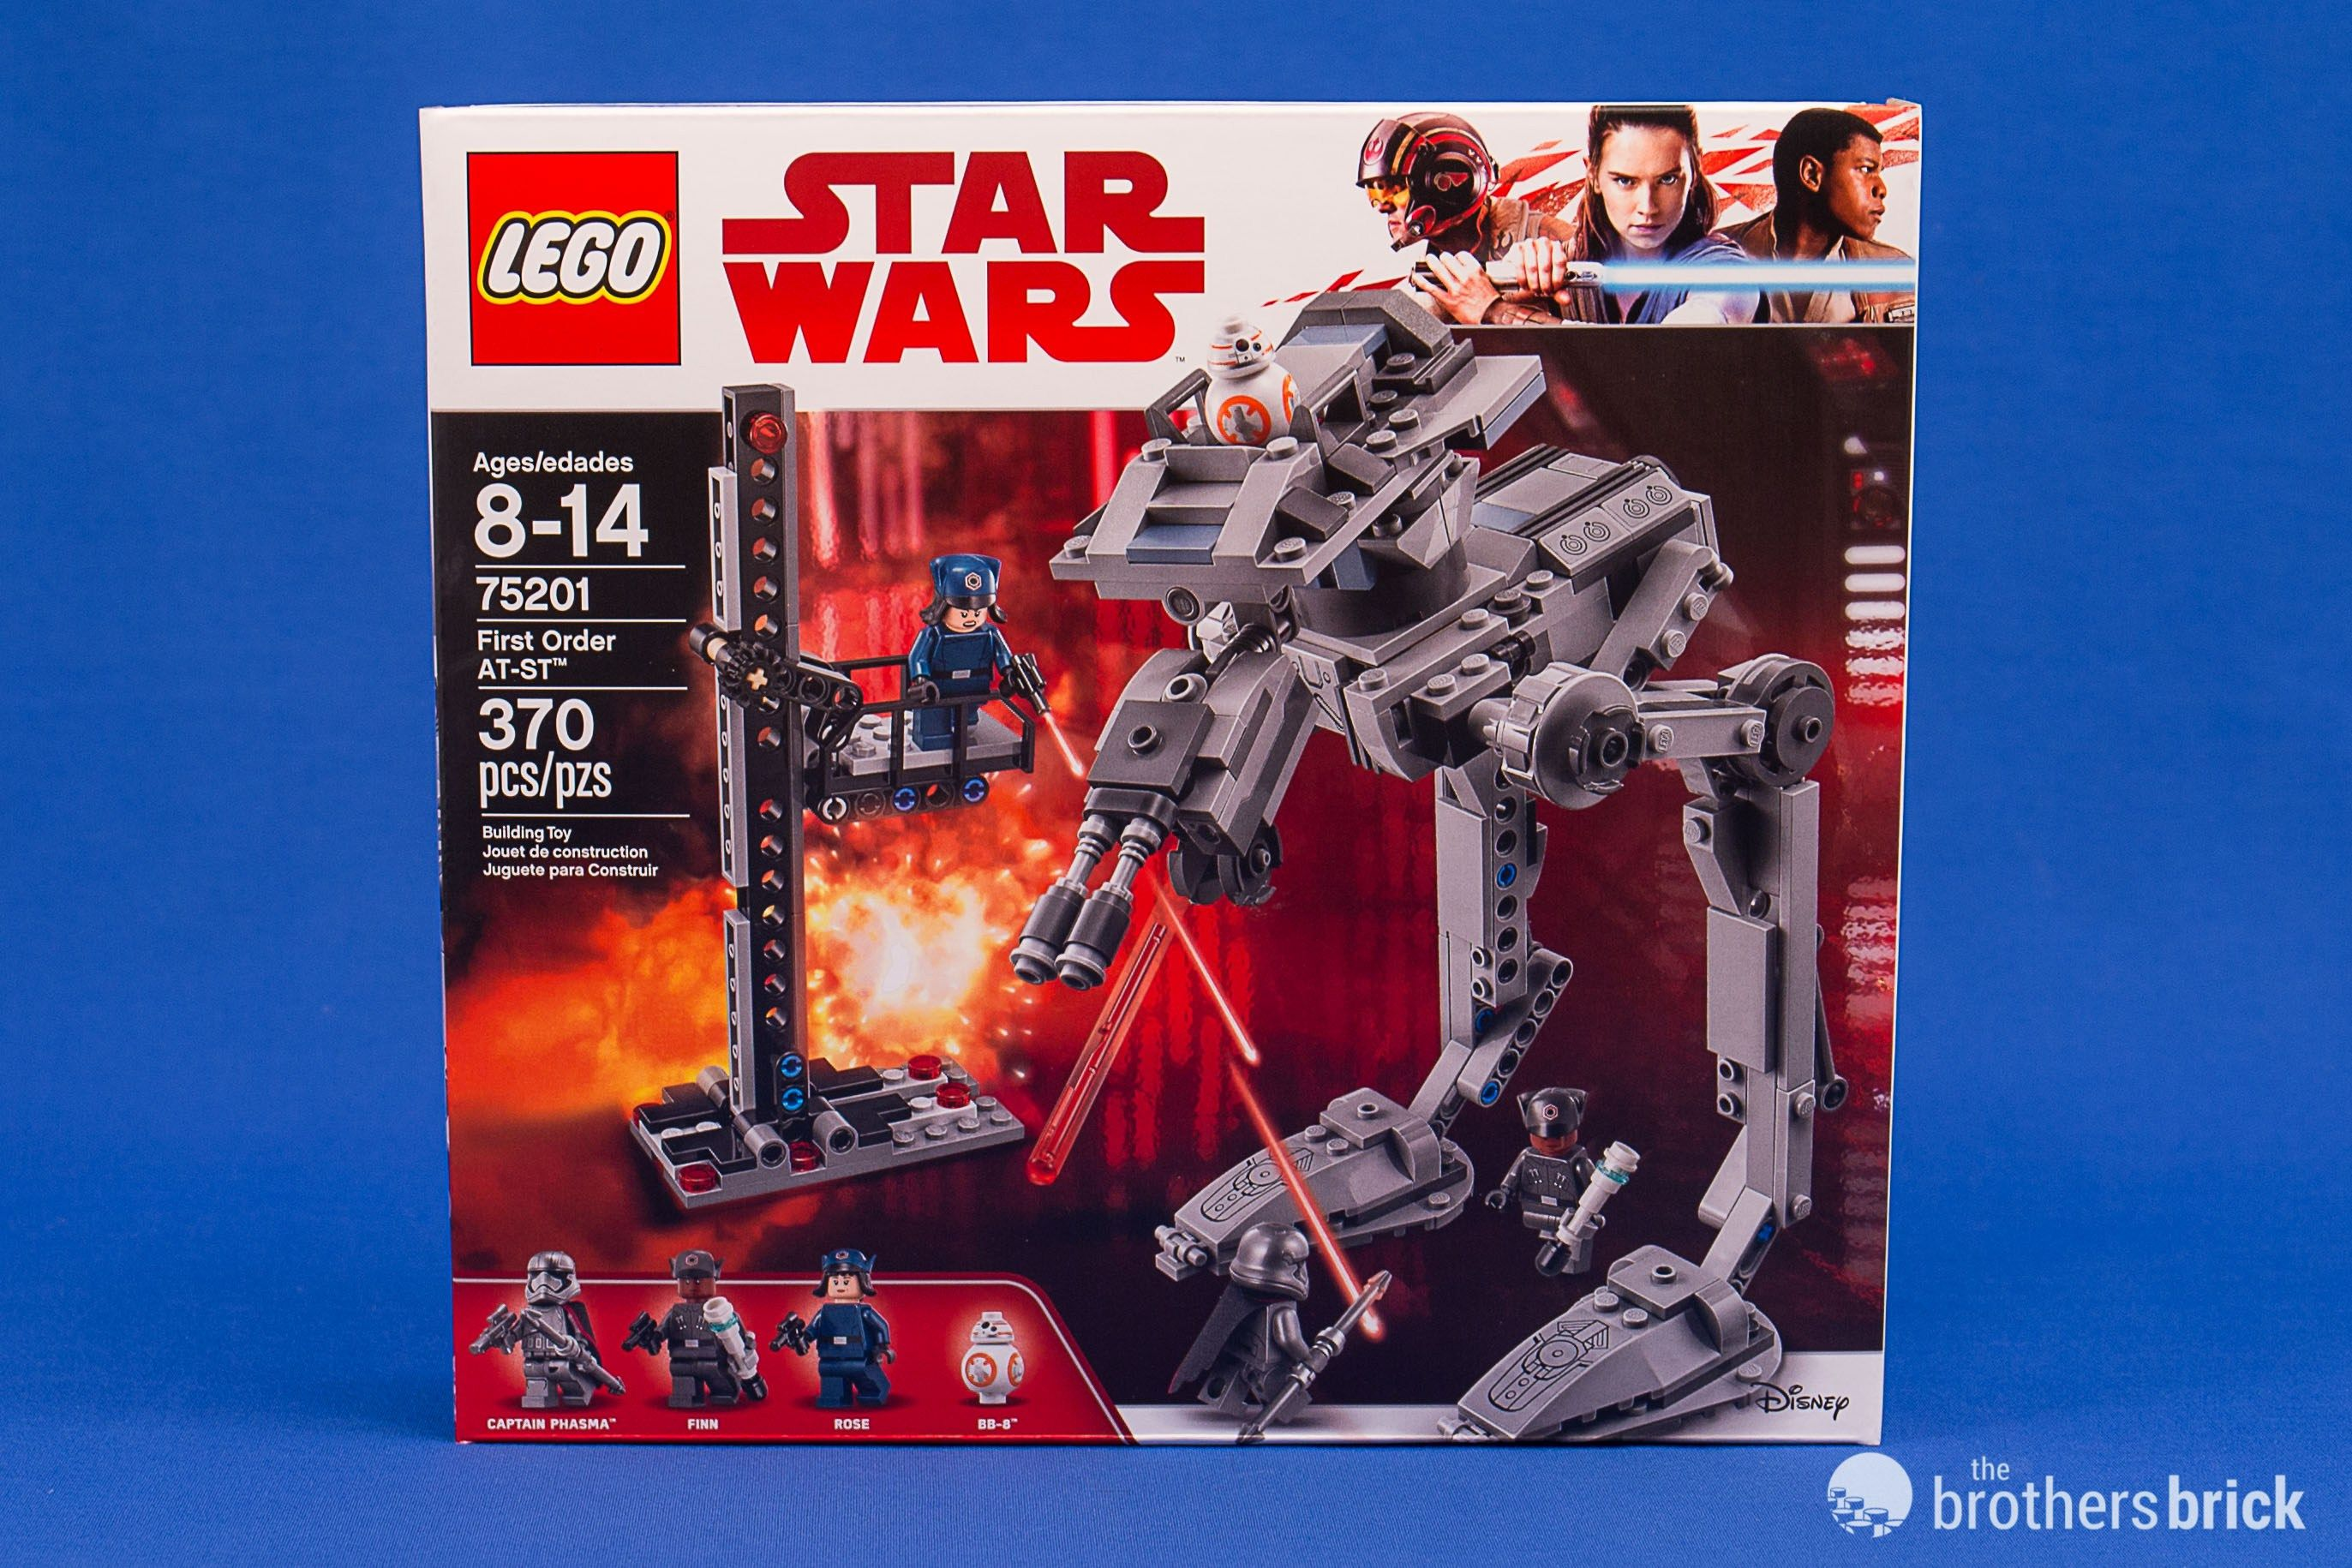 Lego Star Wars 75201 First Order At St Reveals The Last Jedi